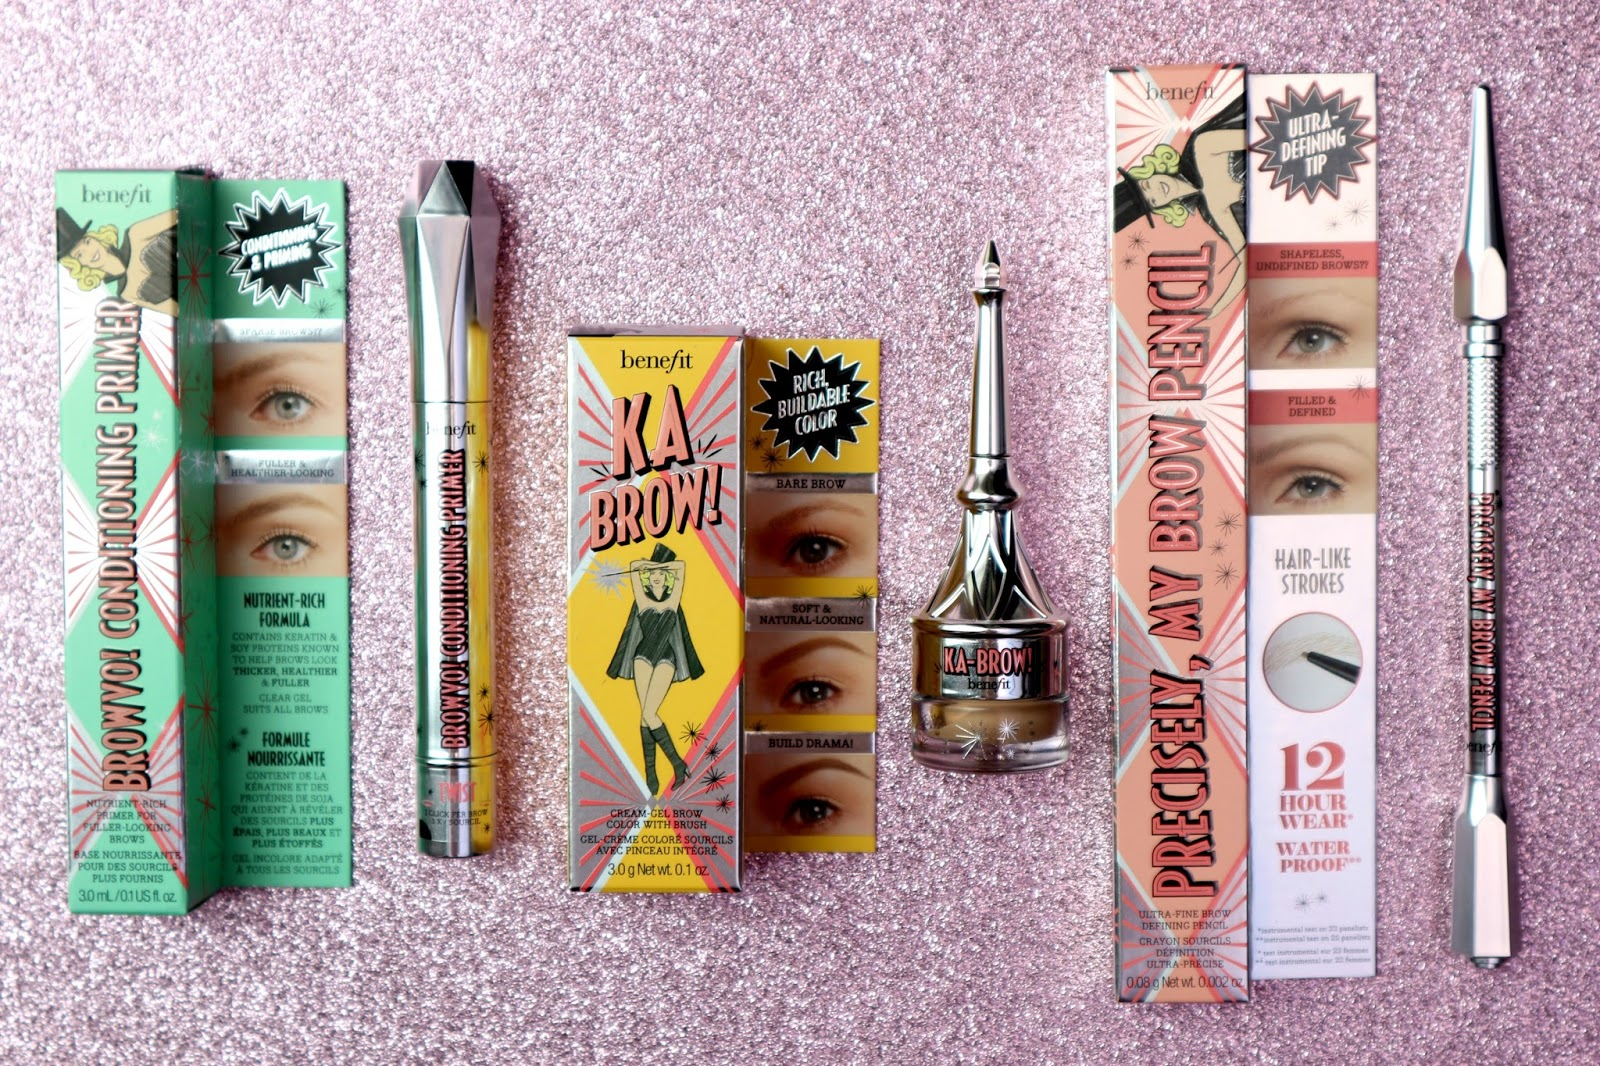 The Benefit New Brow Collection